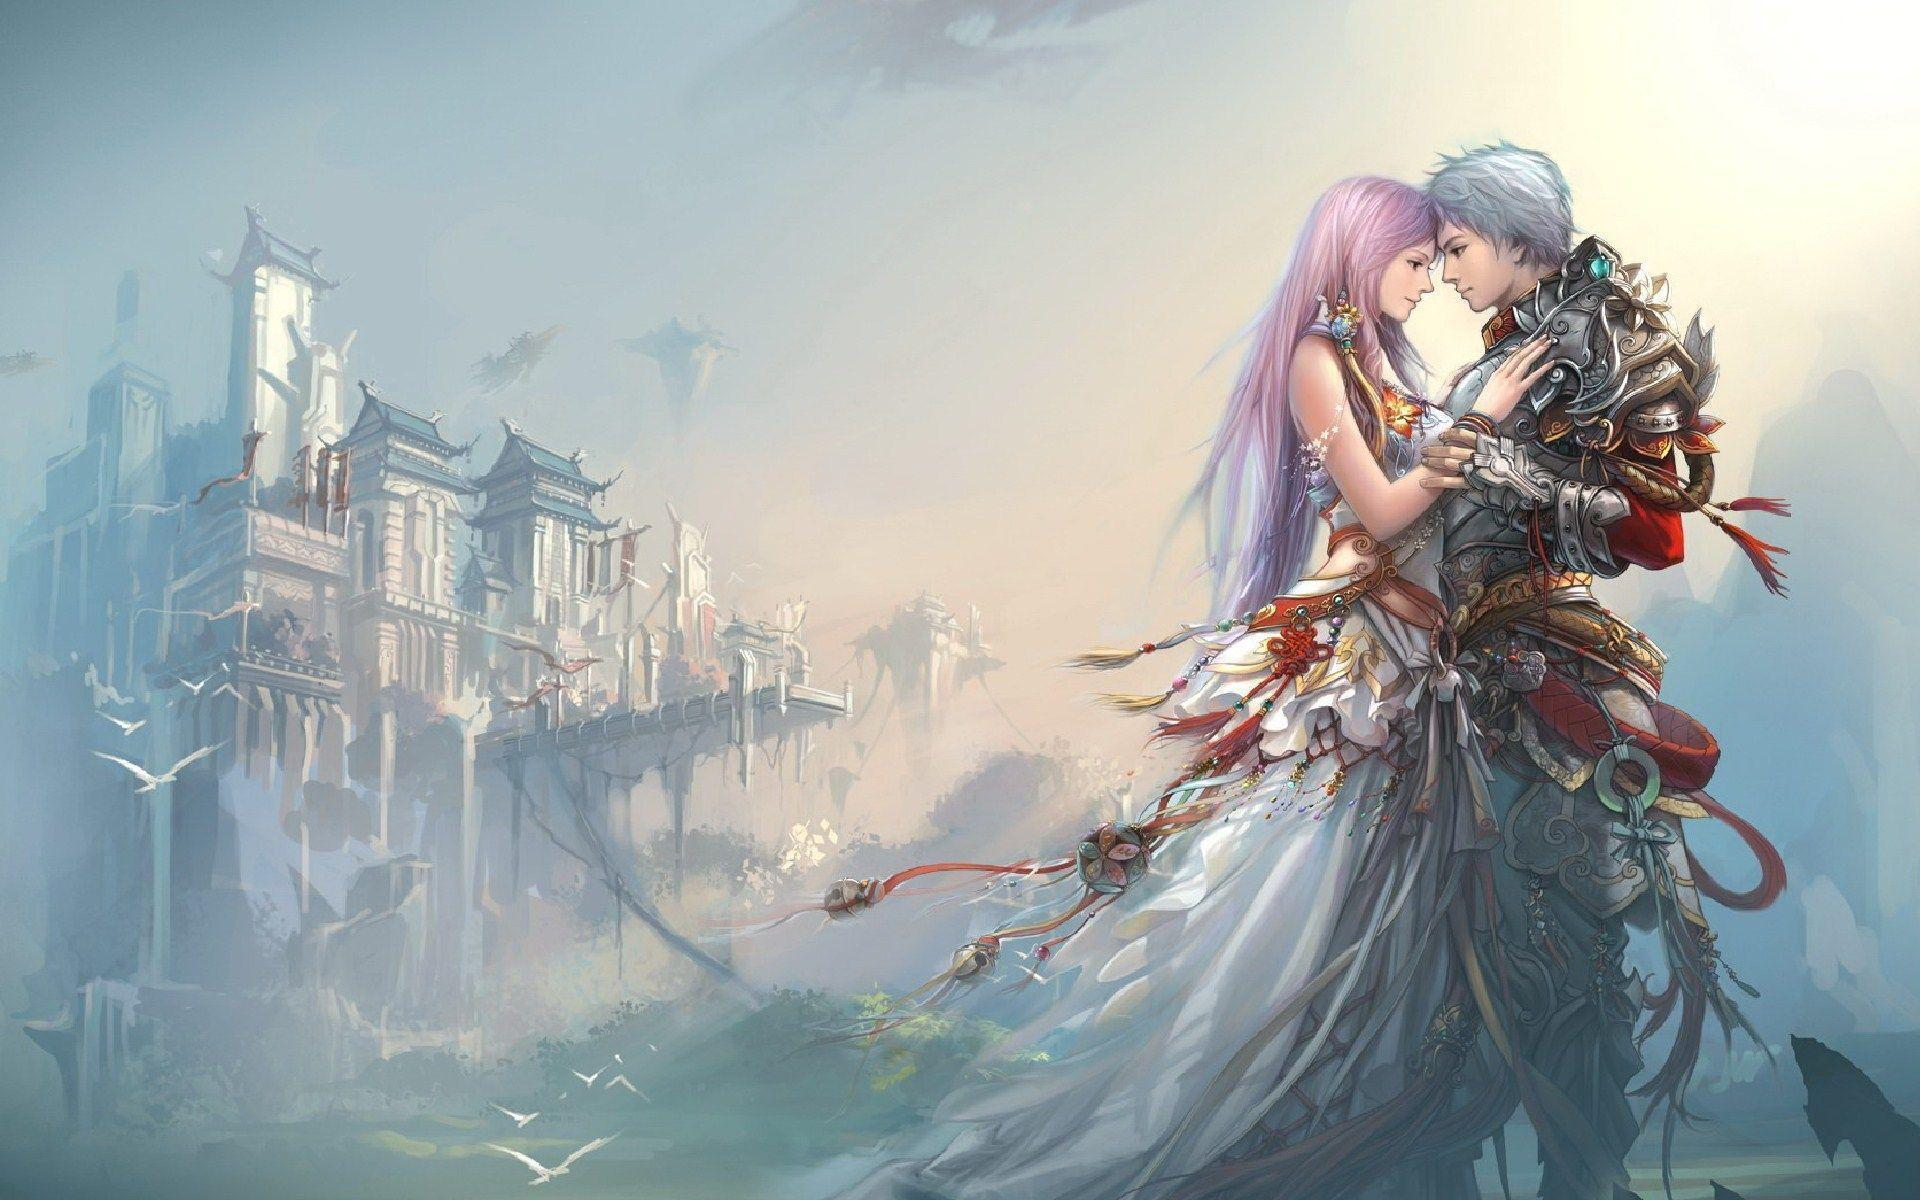 Anime Boy And Girl In Love Wallpaper : Anime Love Wallpapers - Wallpaper cave